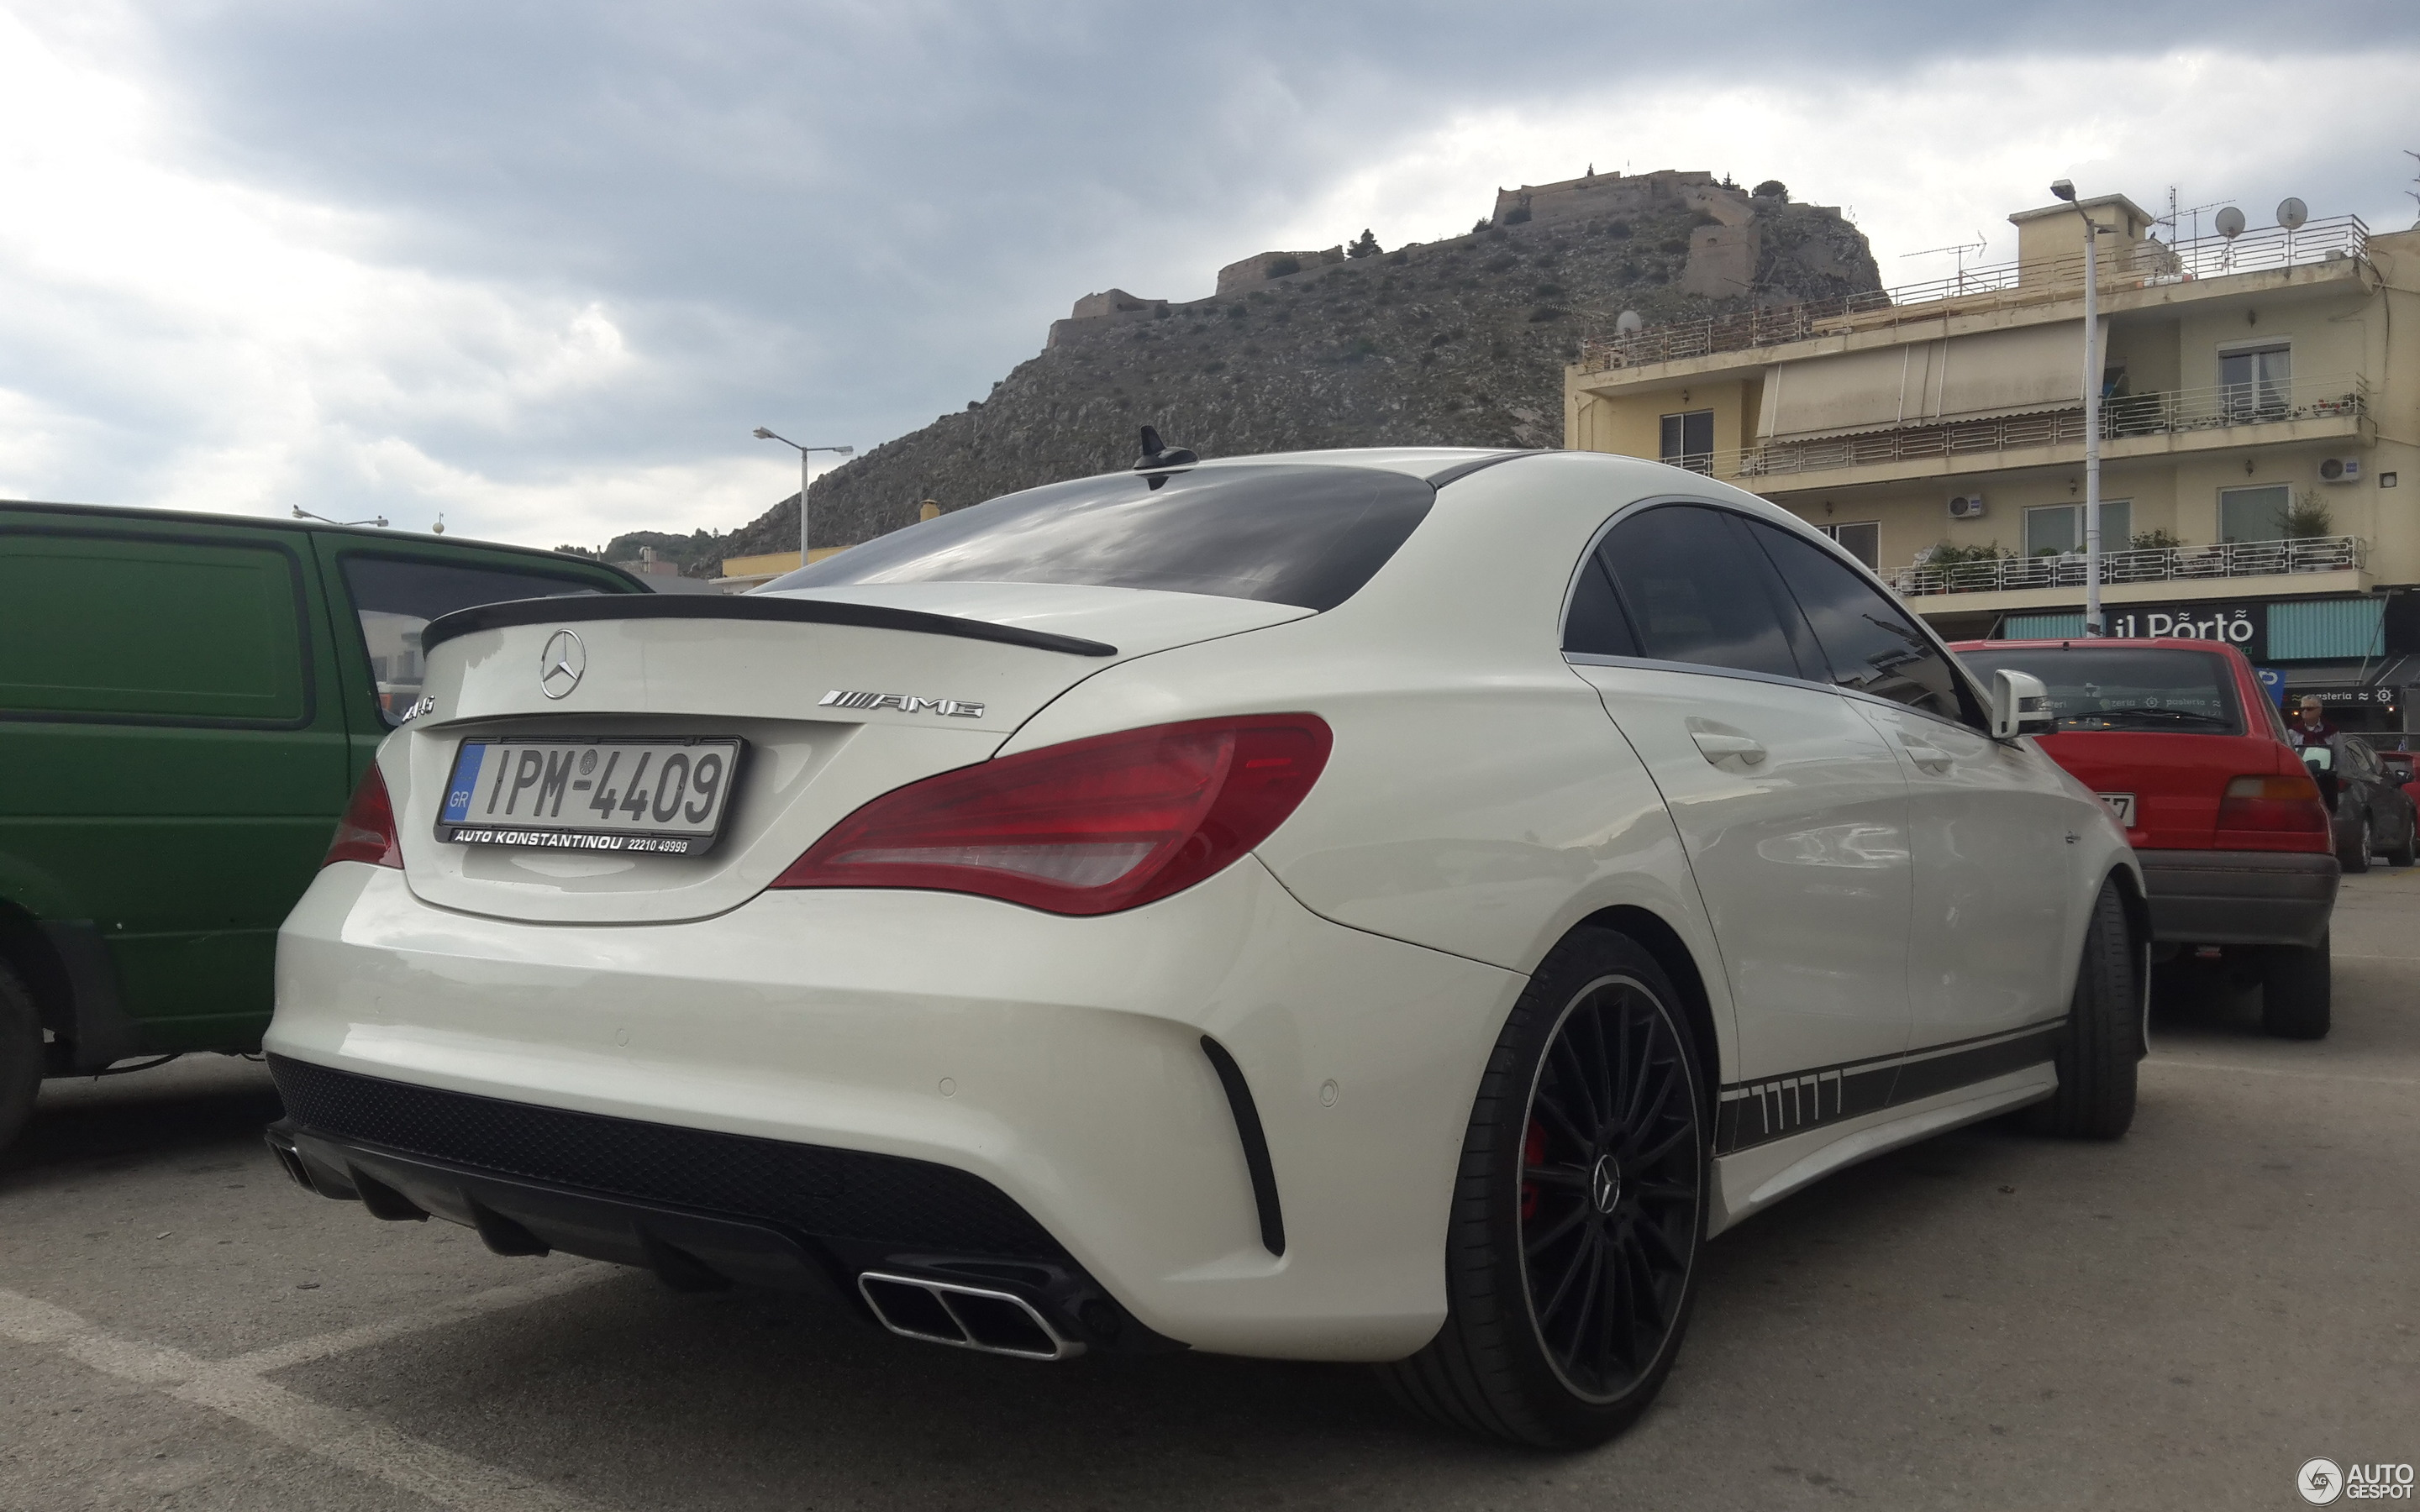 https://ag-spots-2017.o.auroraobjects.eu/2017/10/29/other/2880-1800-crop-mercedes-benz-cla-45-amg-edition-1-c117-c257629102017211201_1.jpg